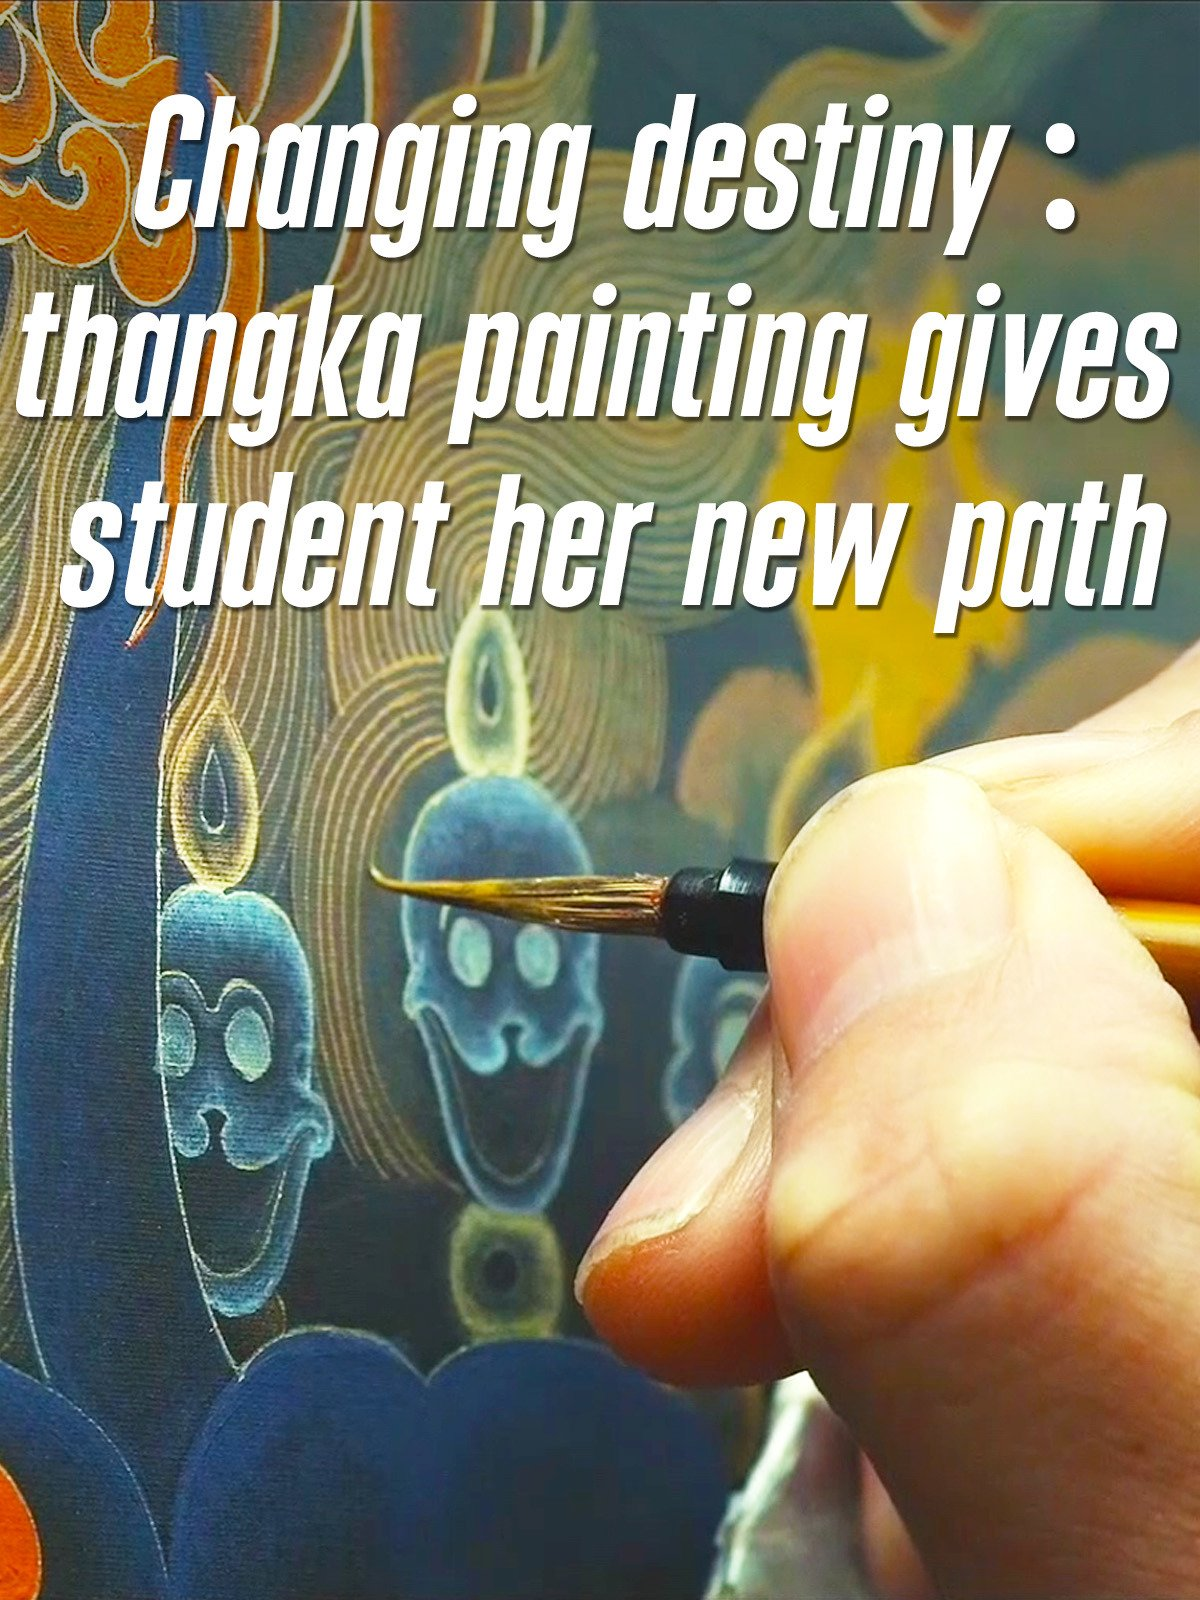 Changing destiny: Thangka painting gives student her new path on Amazon Prime Instant Video UK